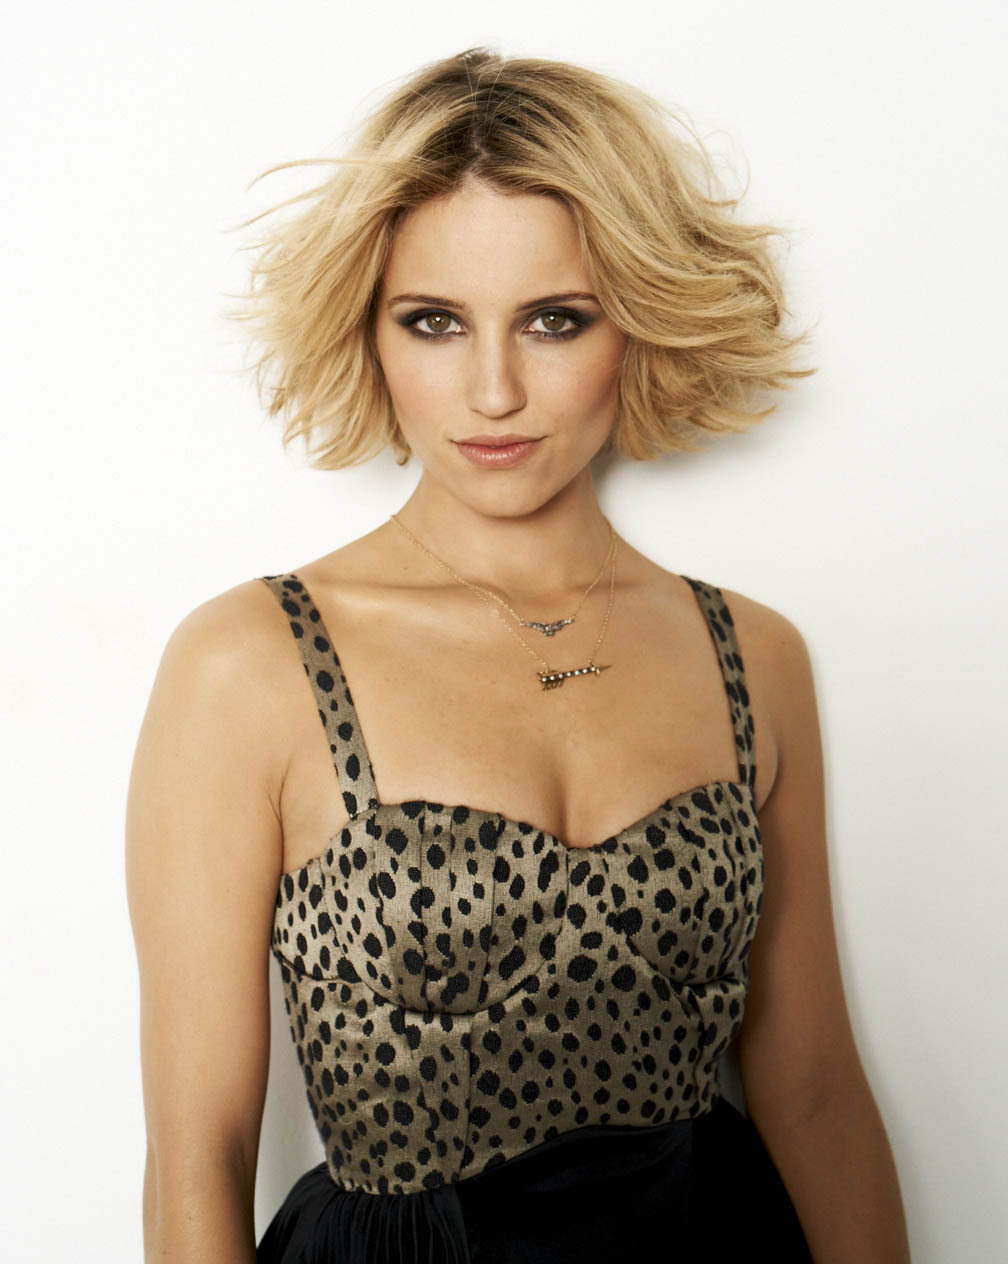 Download this Dianna Agron New Cosmo Photoshoot picture